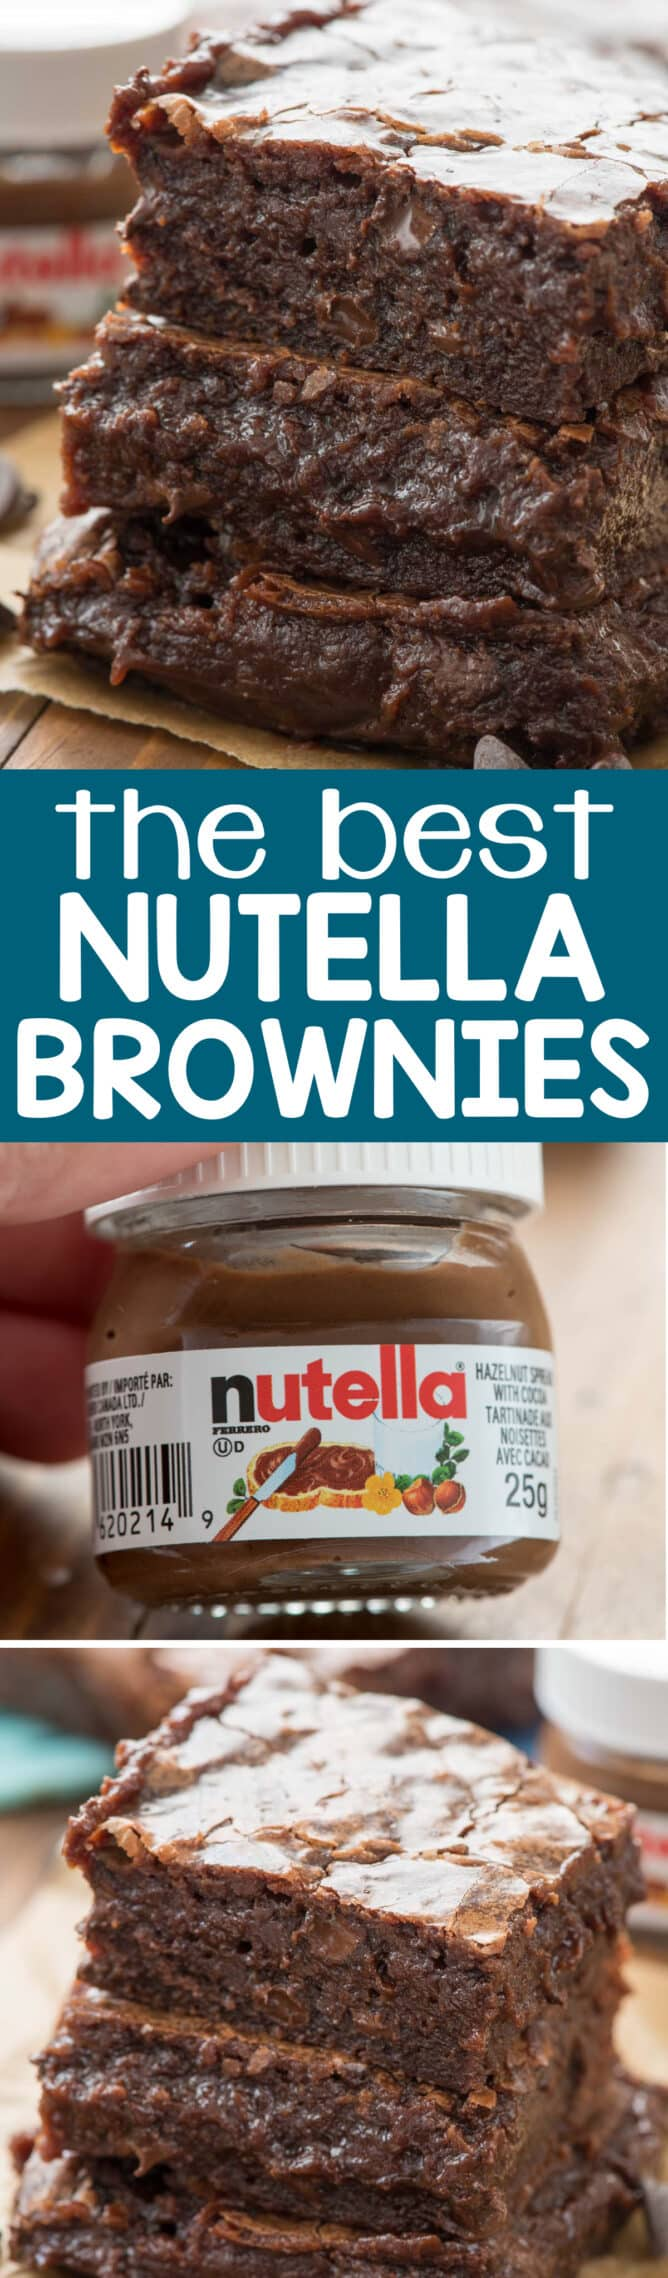 These are the BEST NUTELLA BROWNIES EVER collage of brownie photos and nutella jar